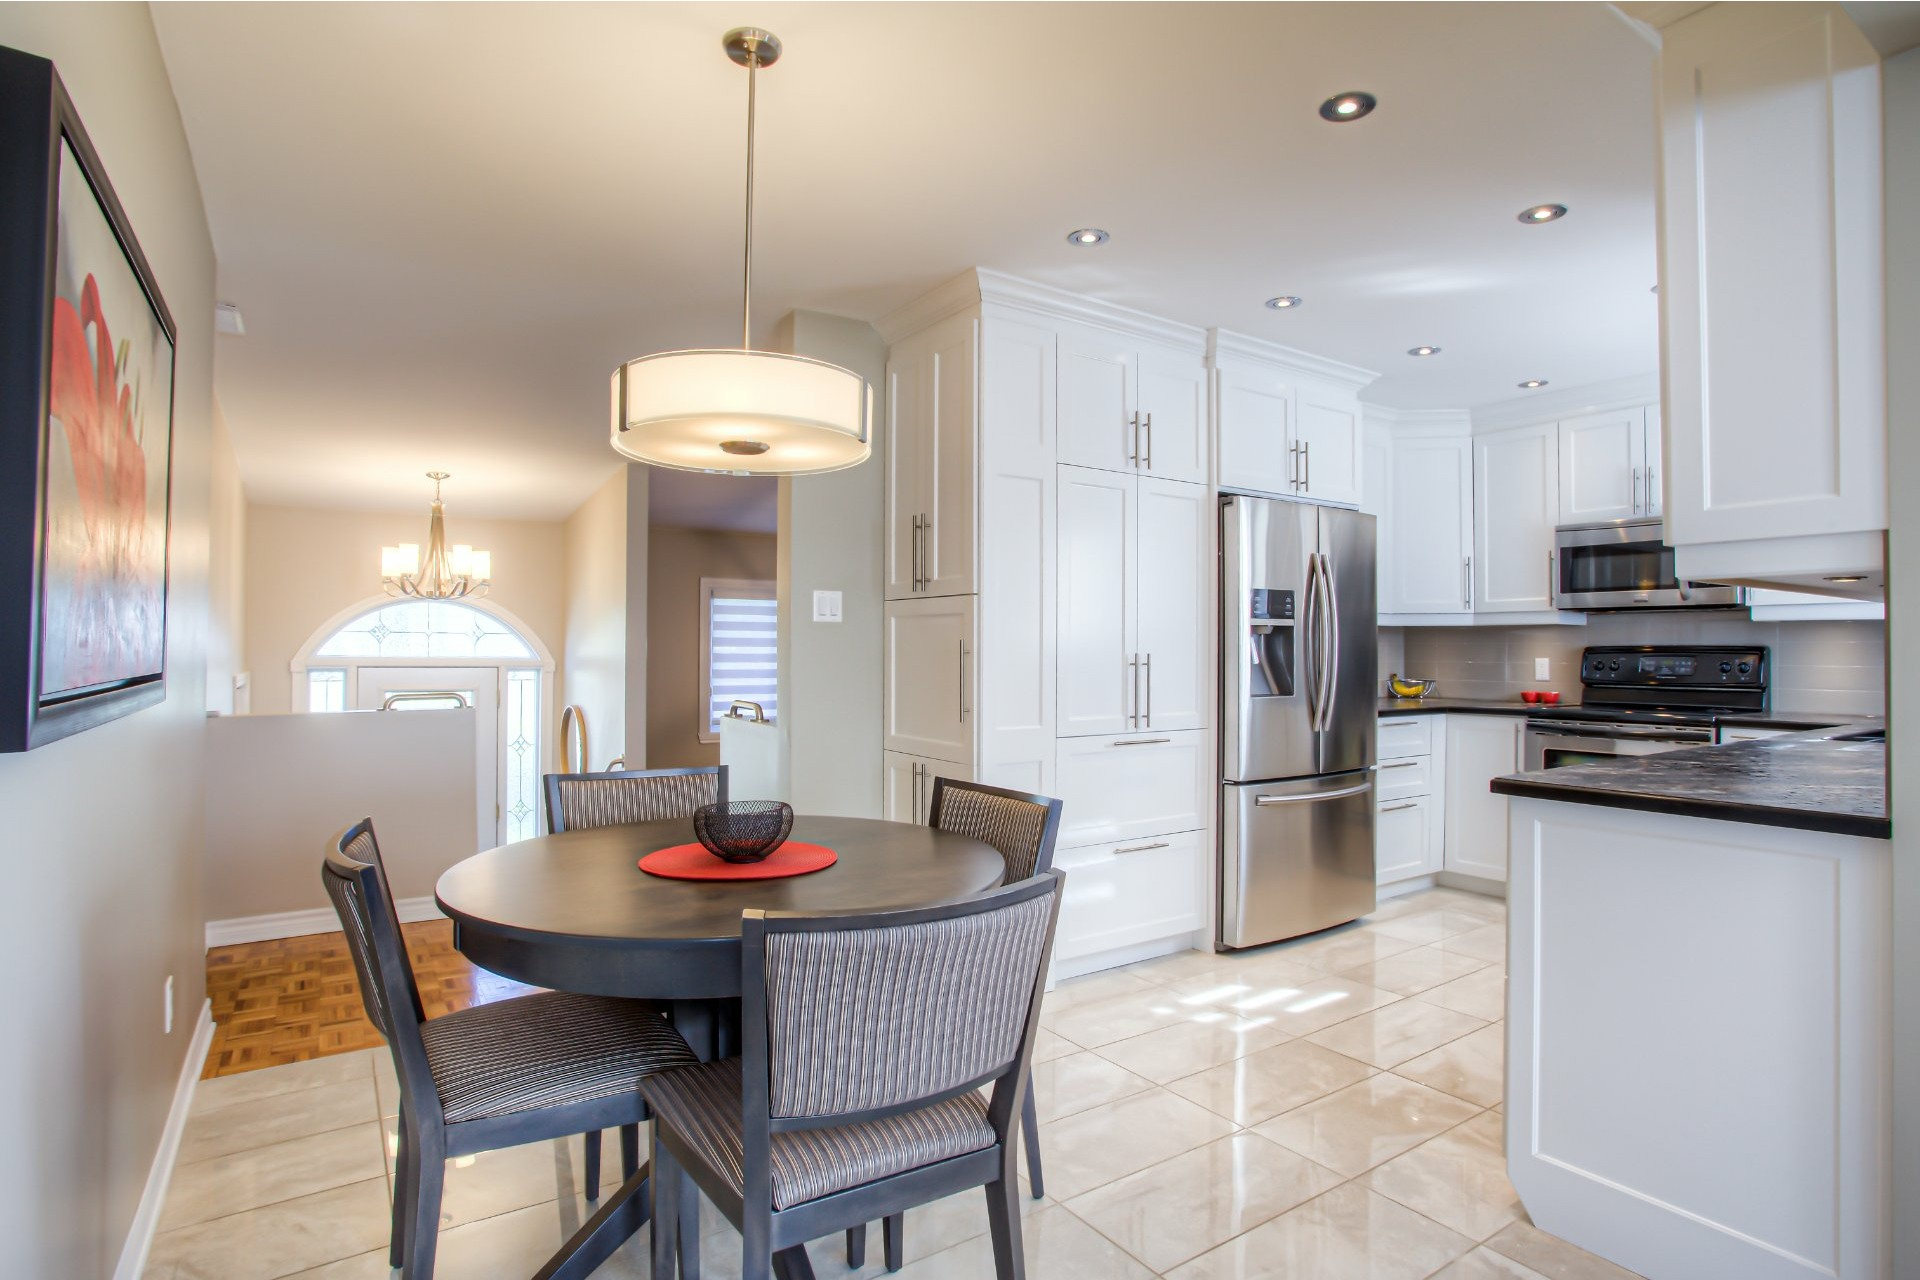 image 2 - House For sale Vaudreuil-Dorion - 11 rooms